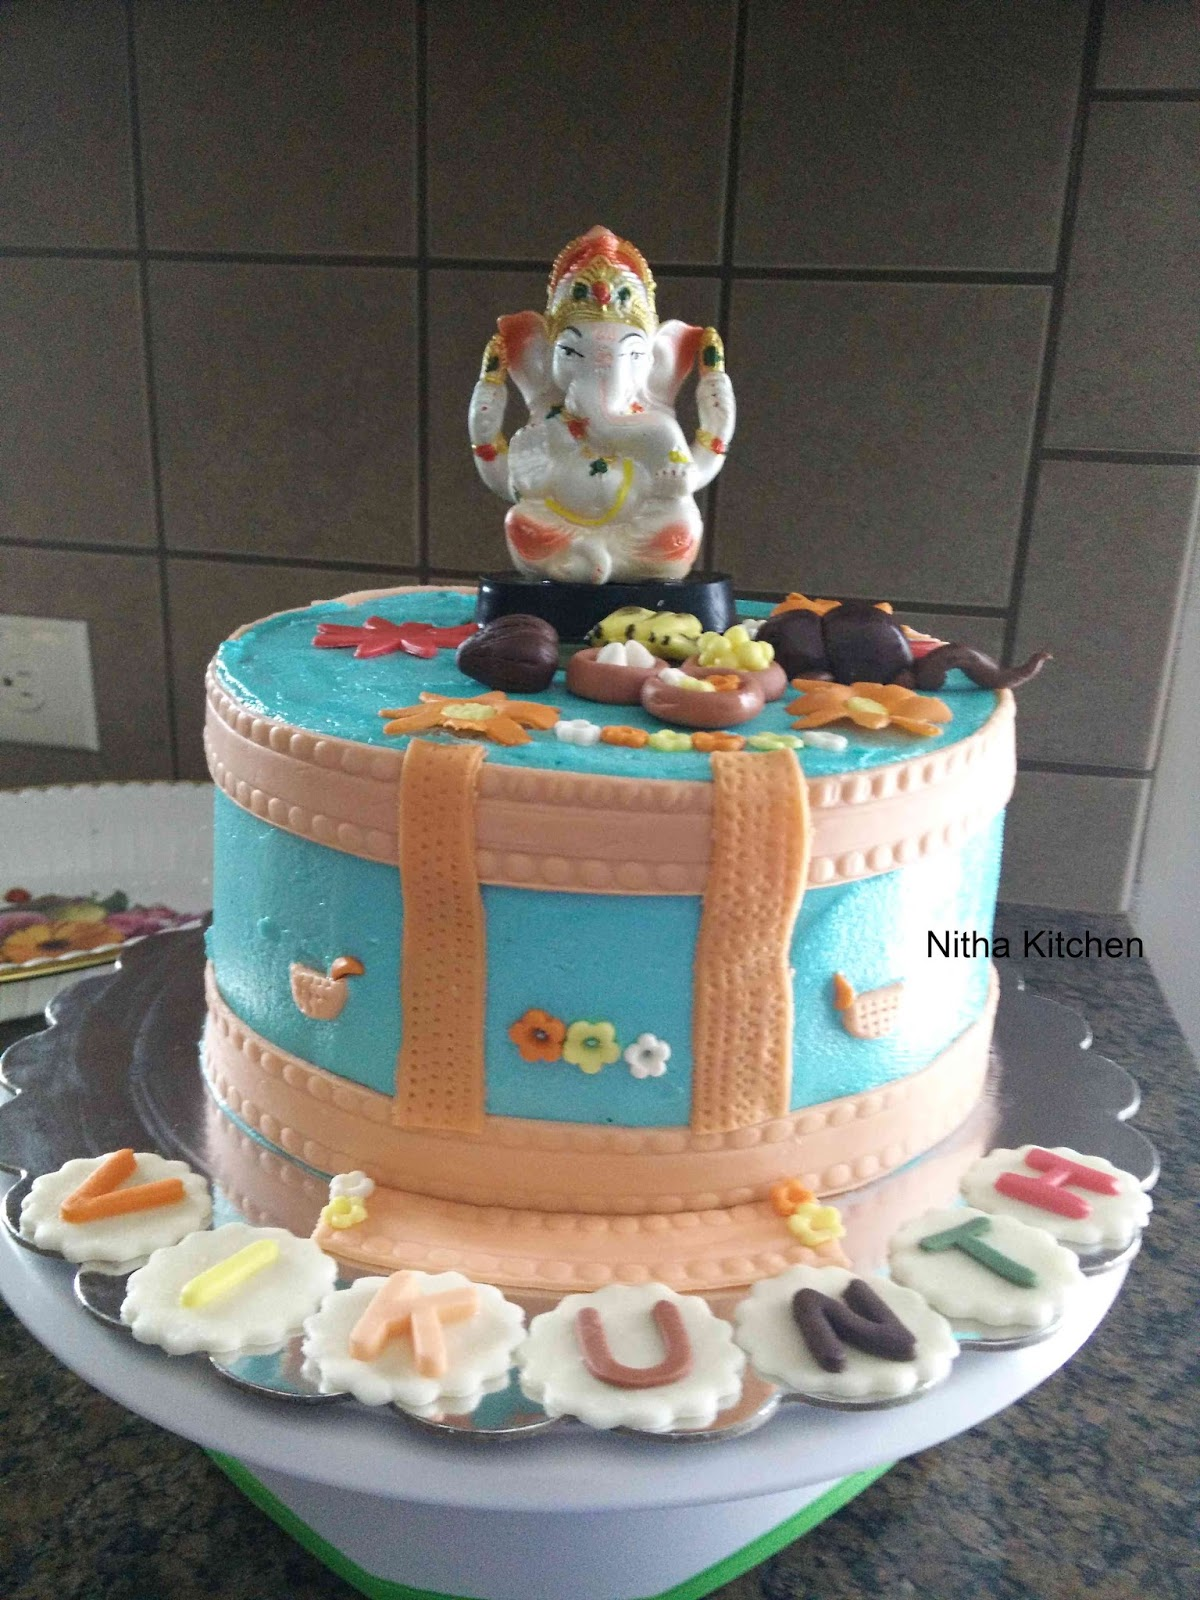 Nitha Kitchen: Ganesh Themed Buttercream Cake with Eggless ...